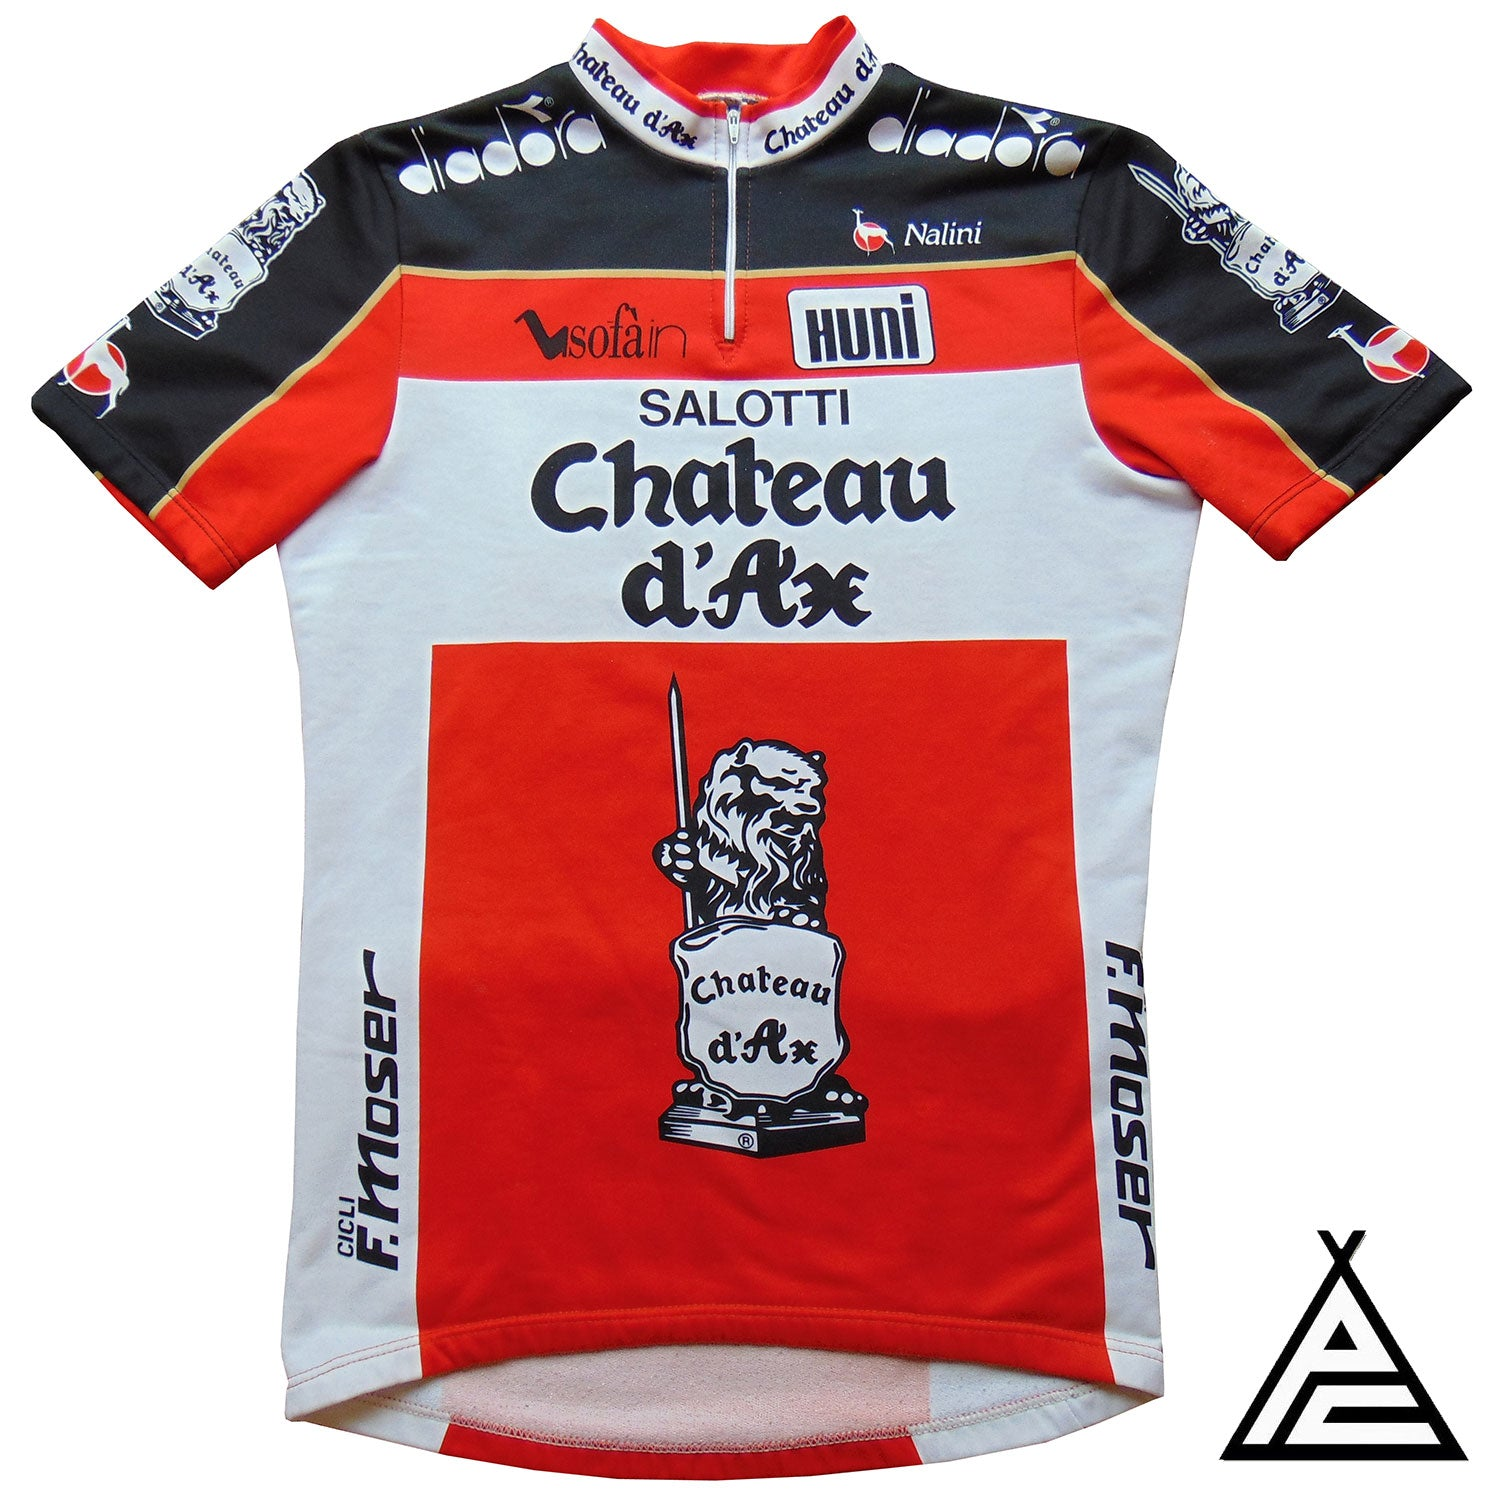 Chateaux D'Ax Salotti 1989 Team Jersey